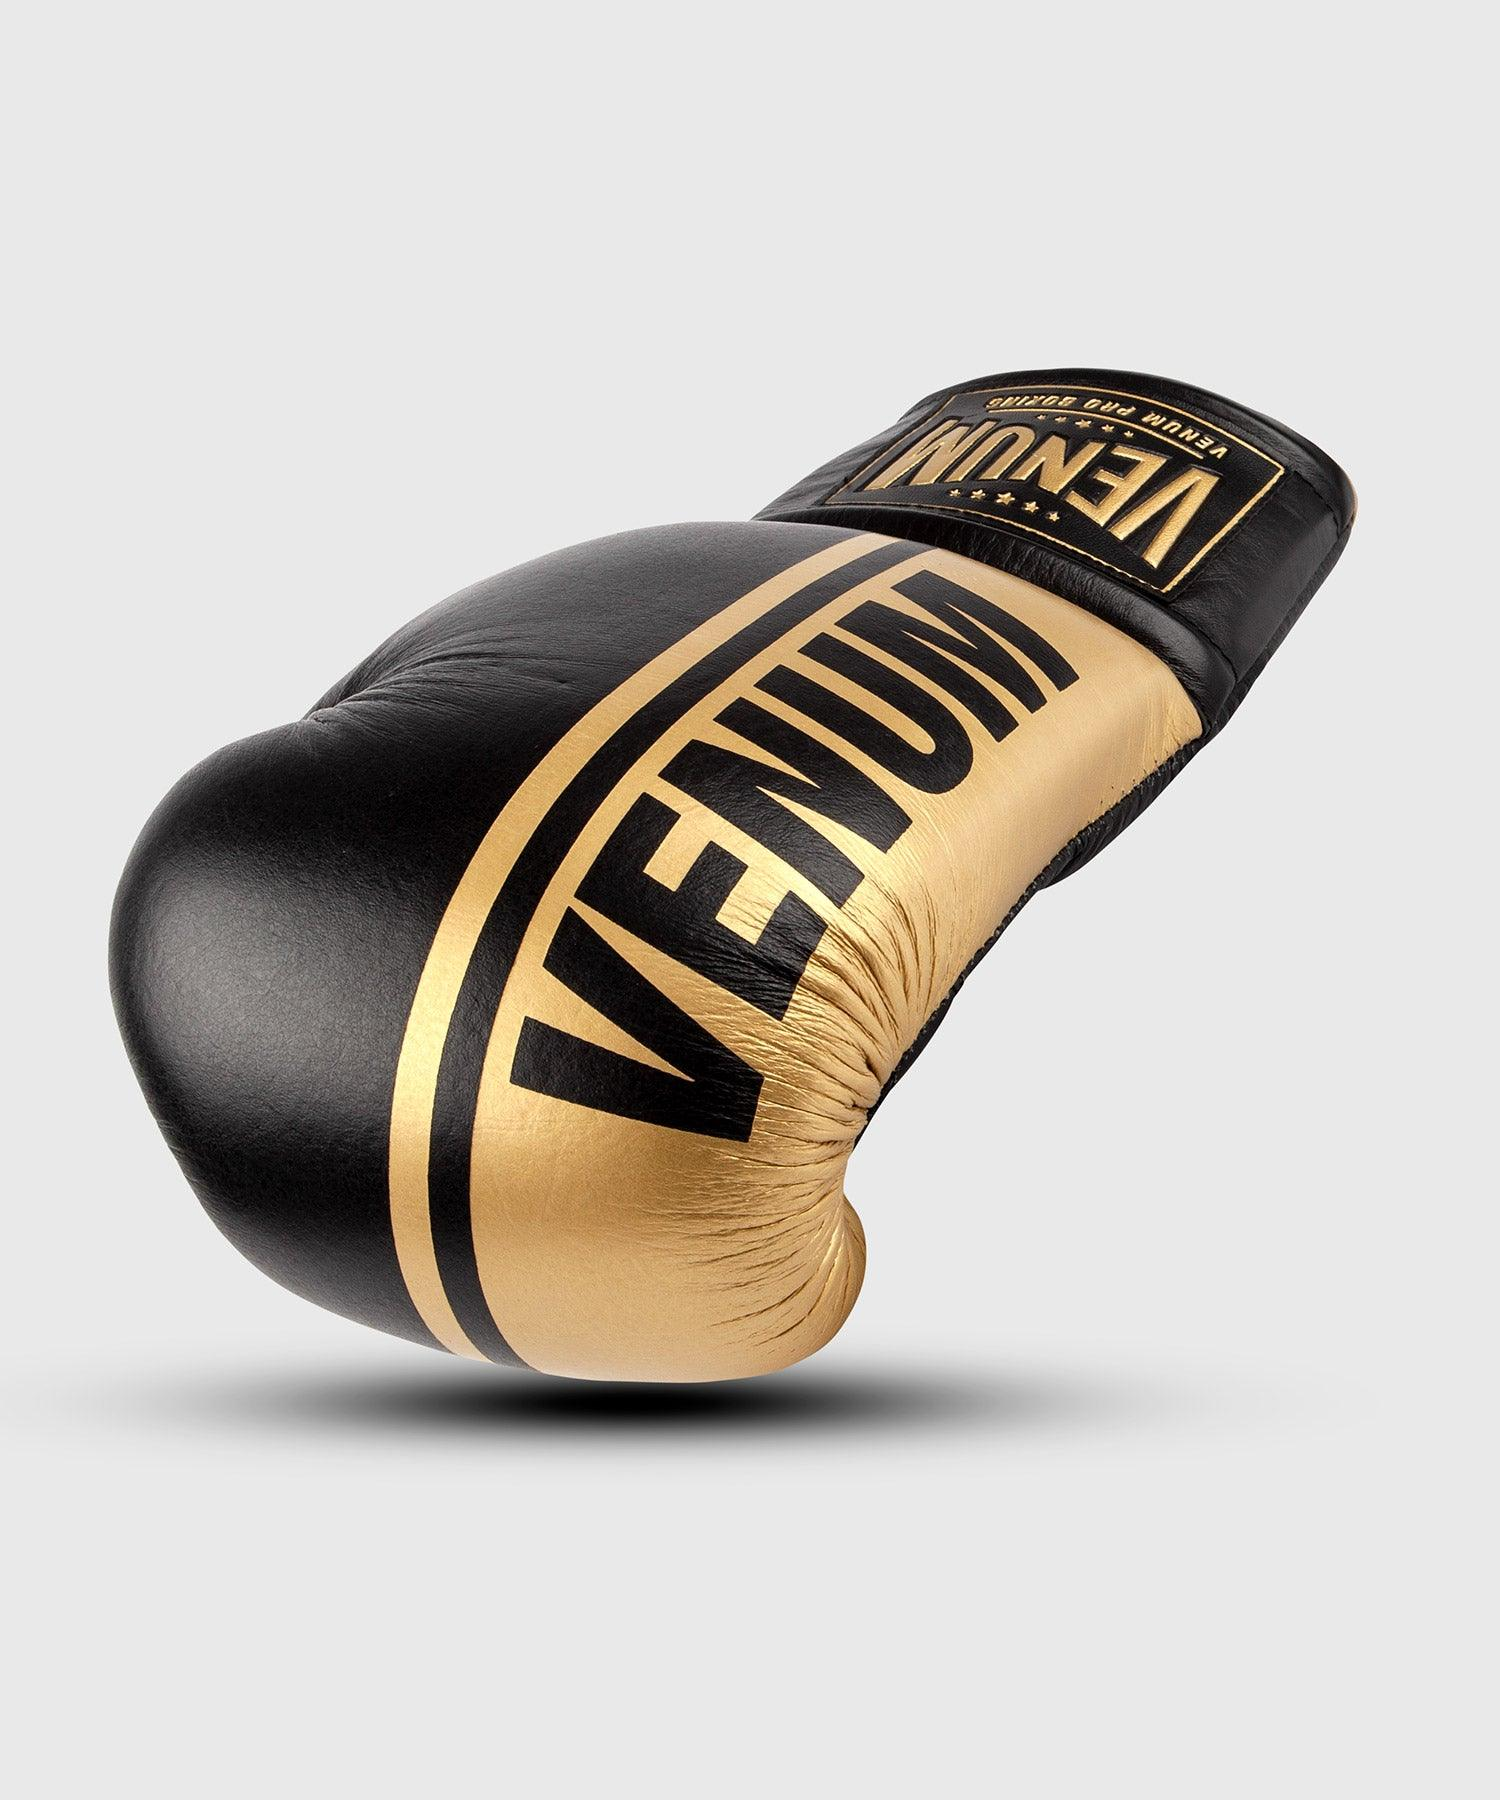 Venum Shield Pro Boxing Gloves - With Laces - Black/Gold picture 1